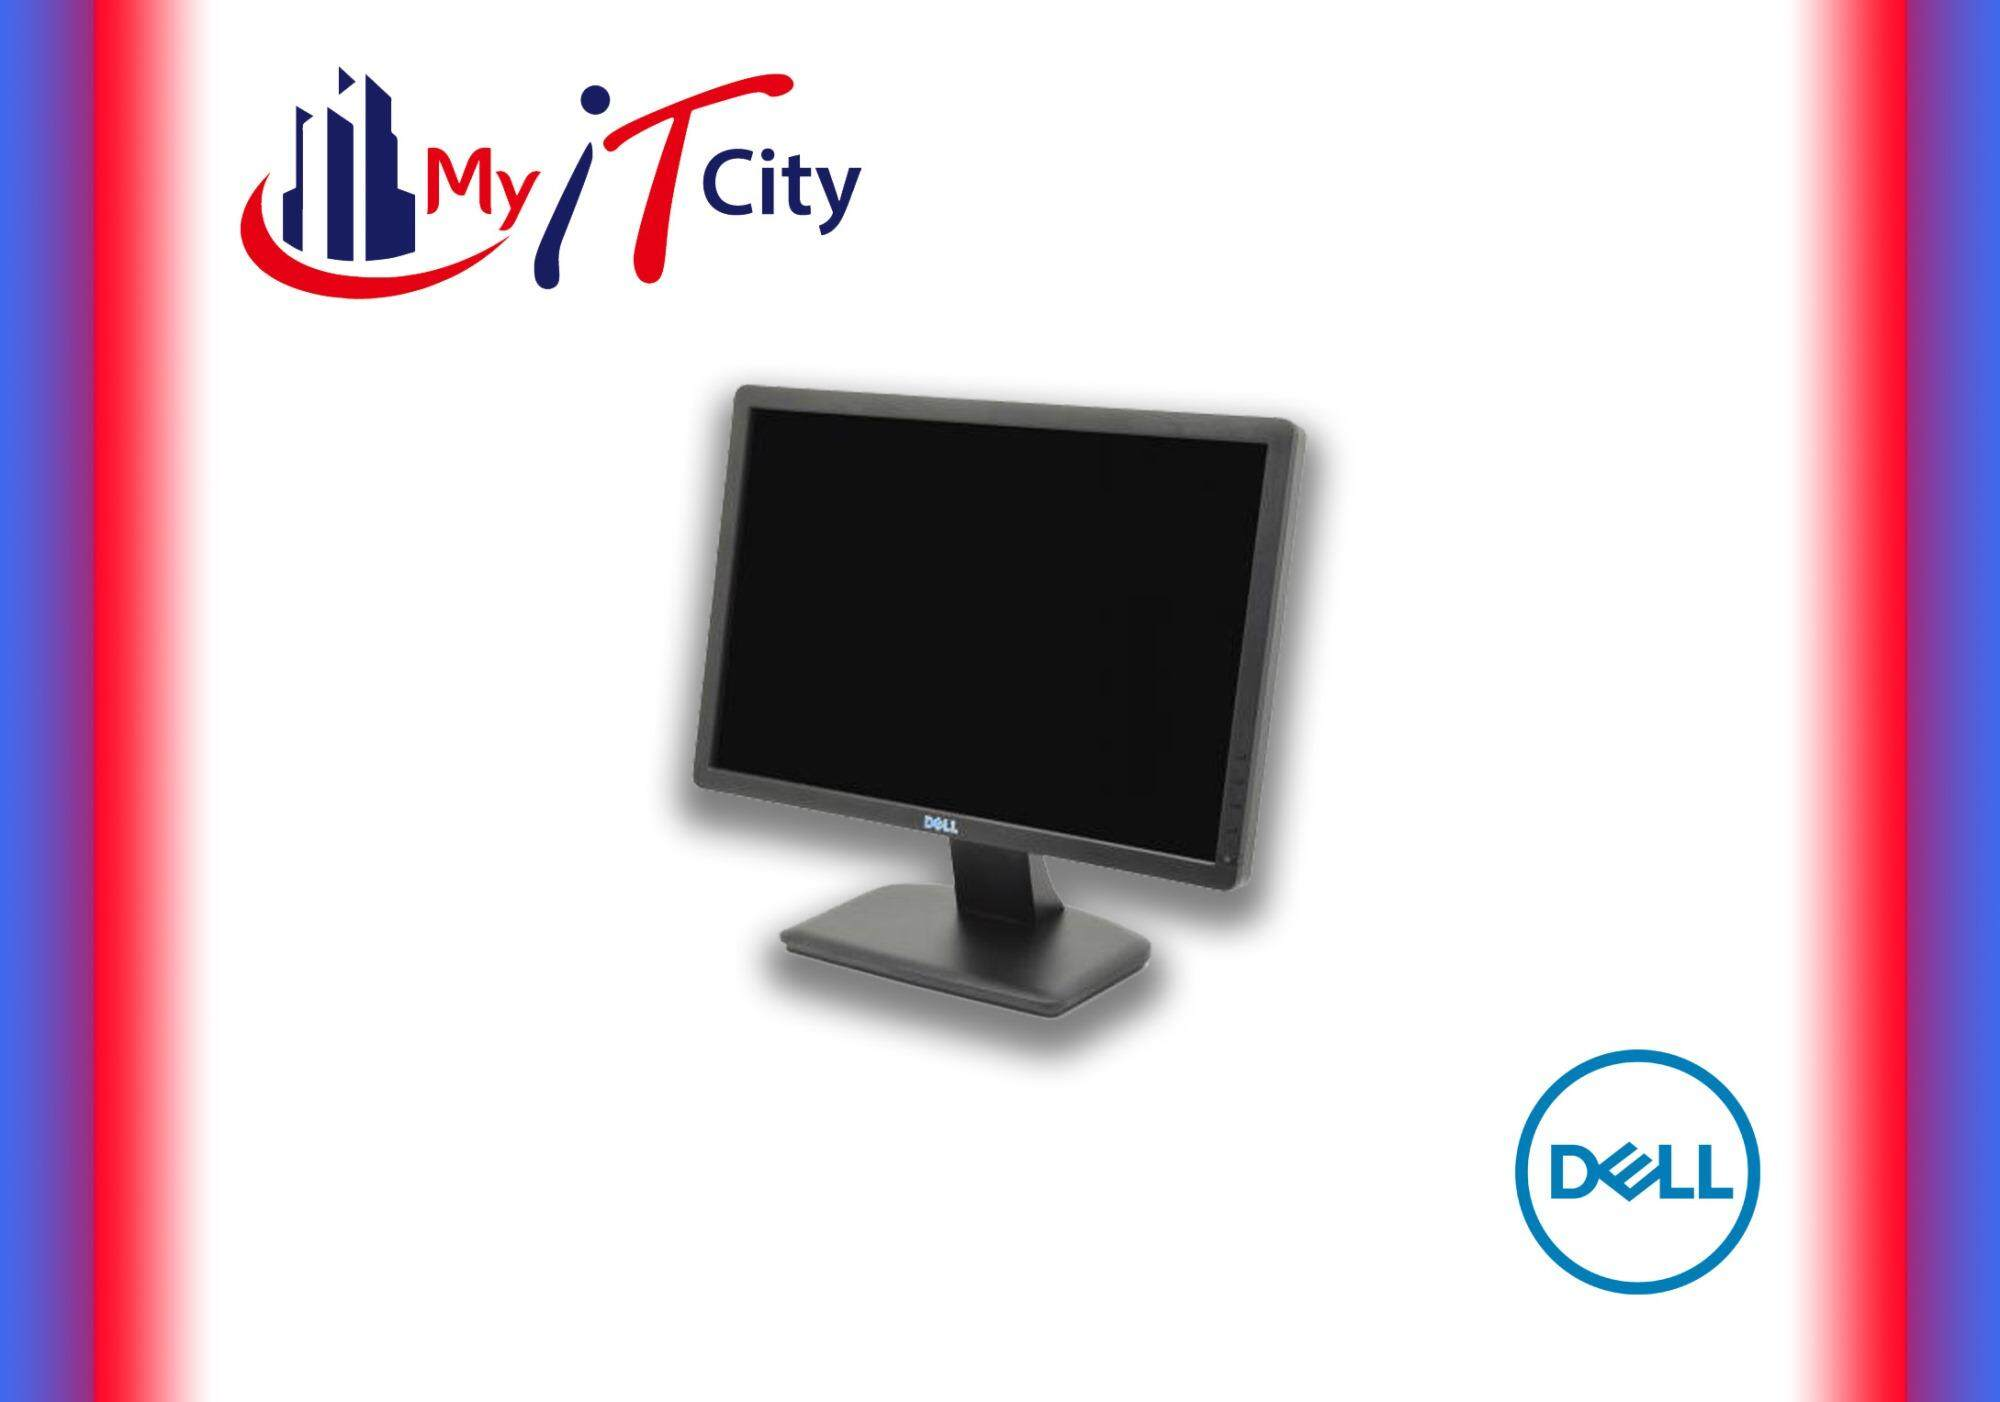 Grade A DELL 19 Inch Wide Screen LCD Monitor E1913c (Refurbished) Malaysia